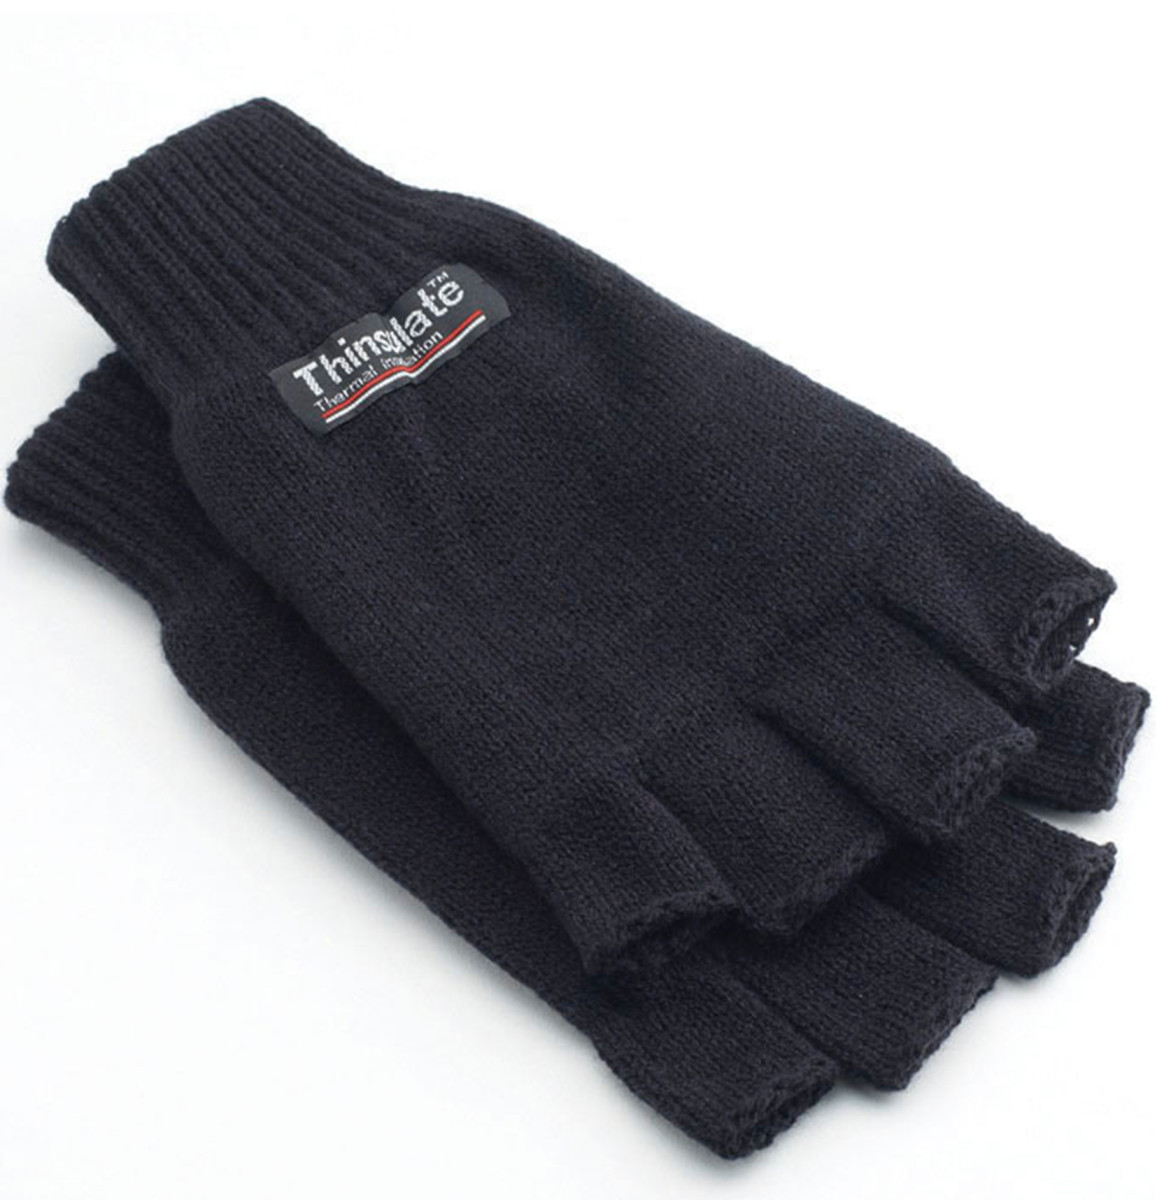 3M Thinsulate Half Finger Gloves